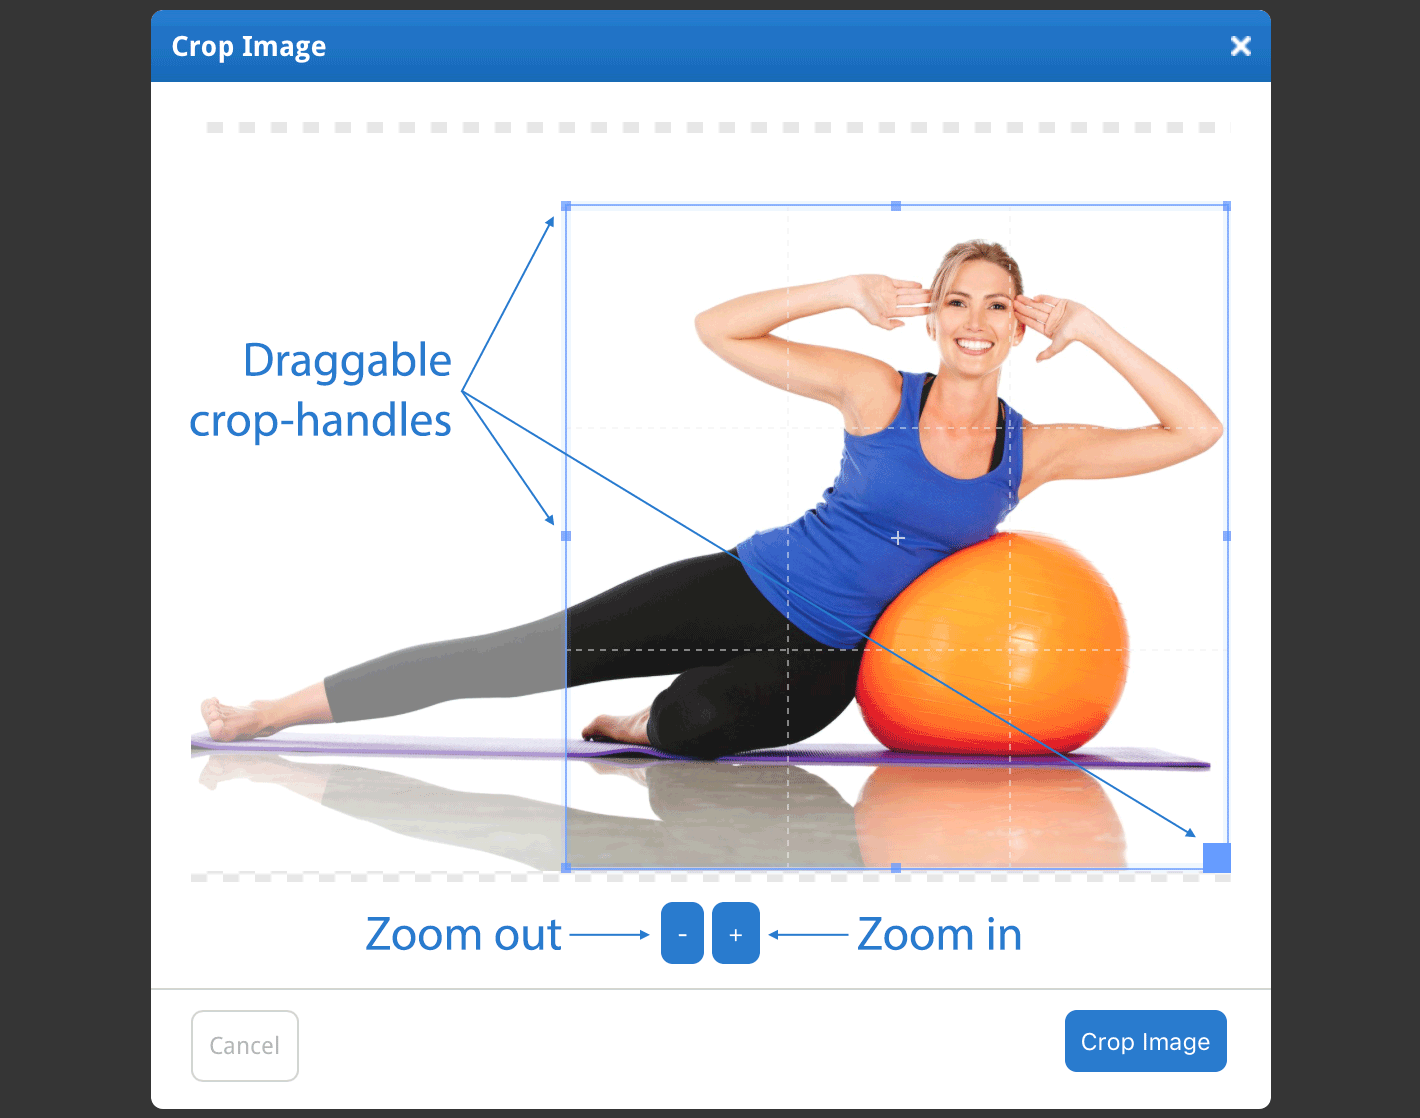 Drag the crop-handles and zoom in and out